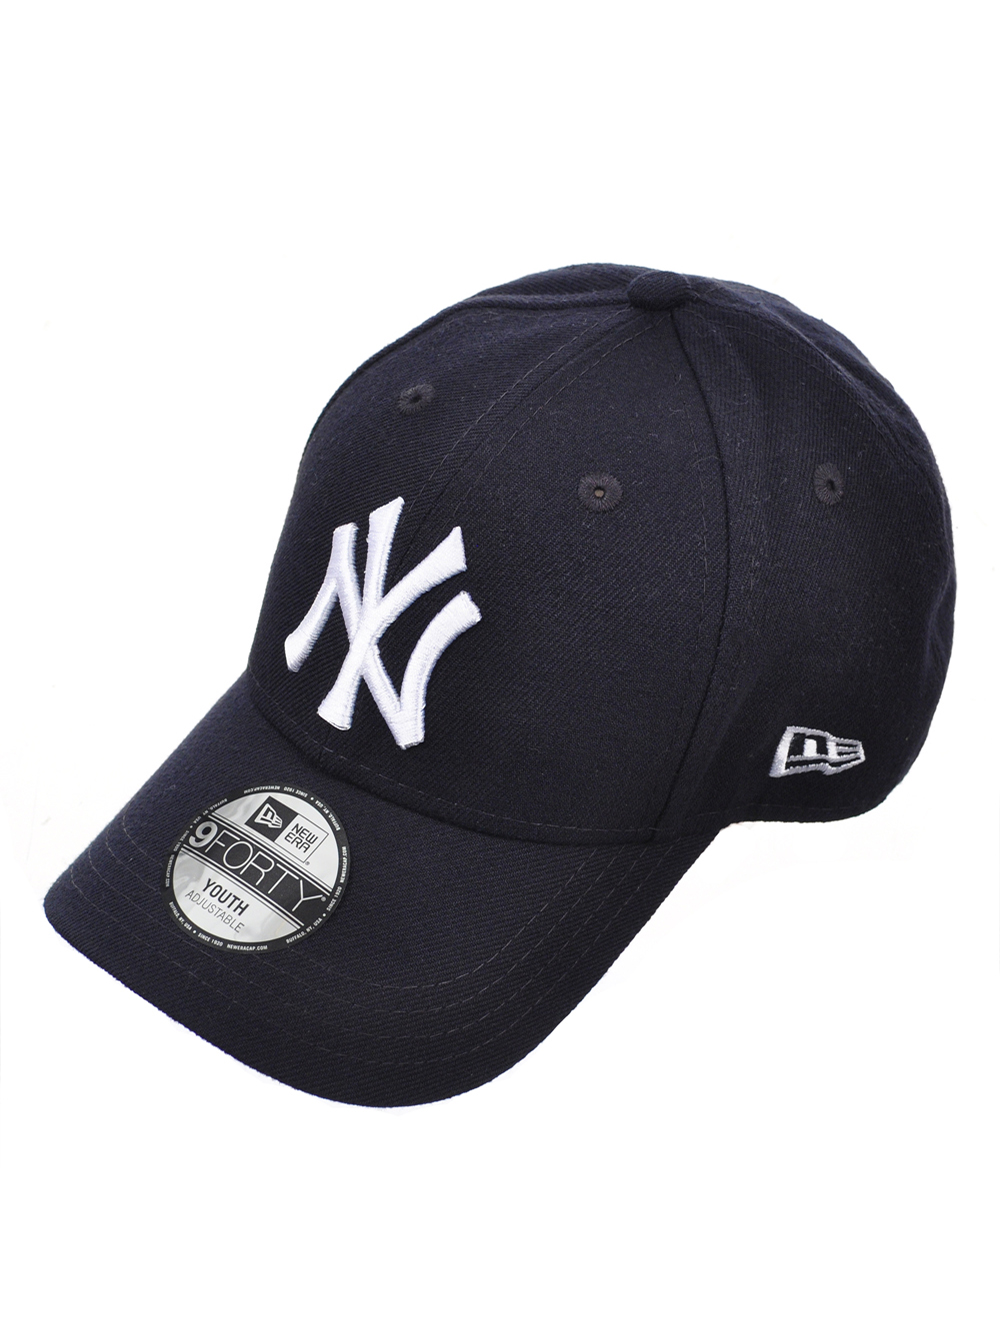 3441b339ee3 New Era 940 New York Yankees Cap (Youth One Size)